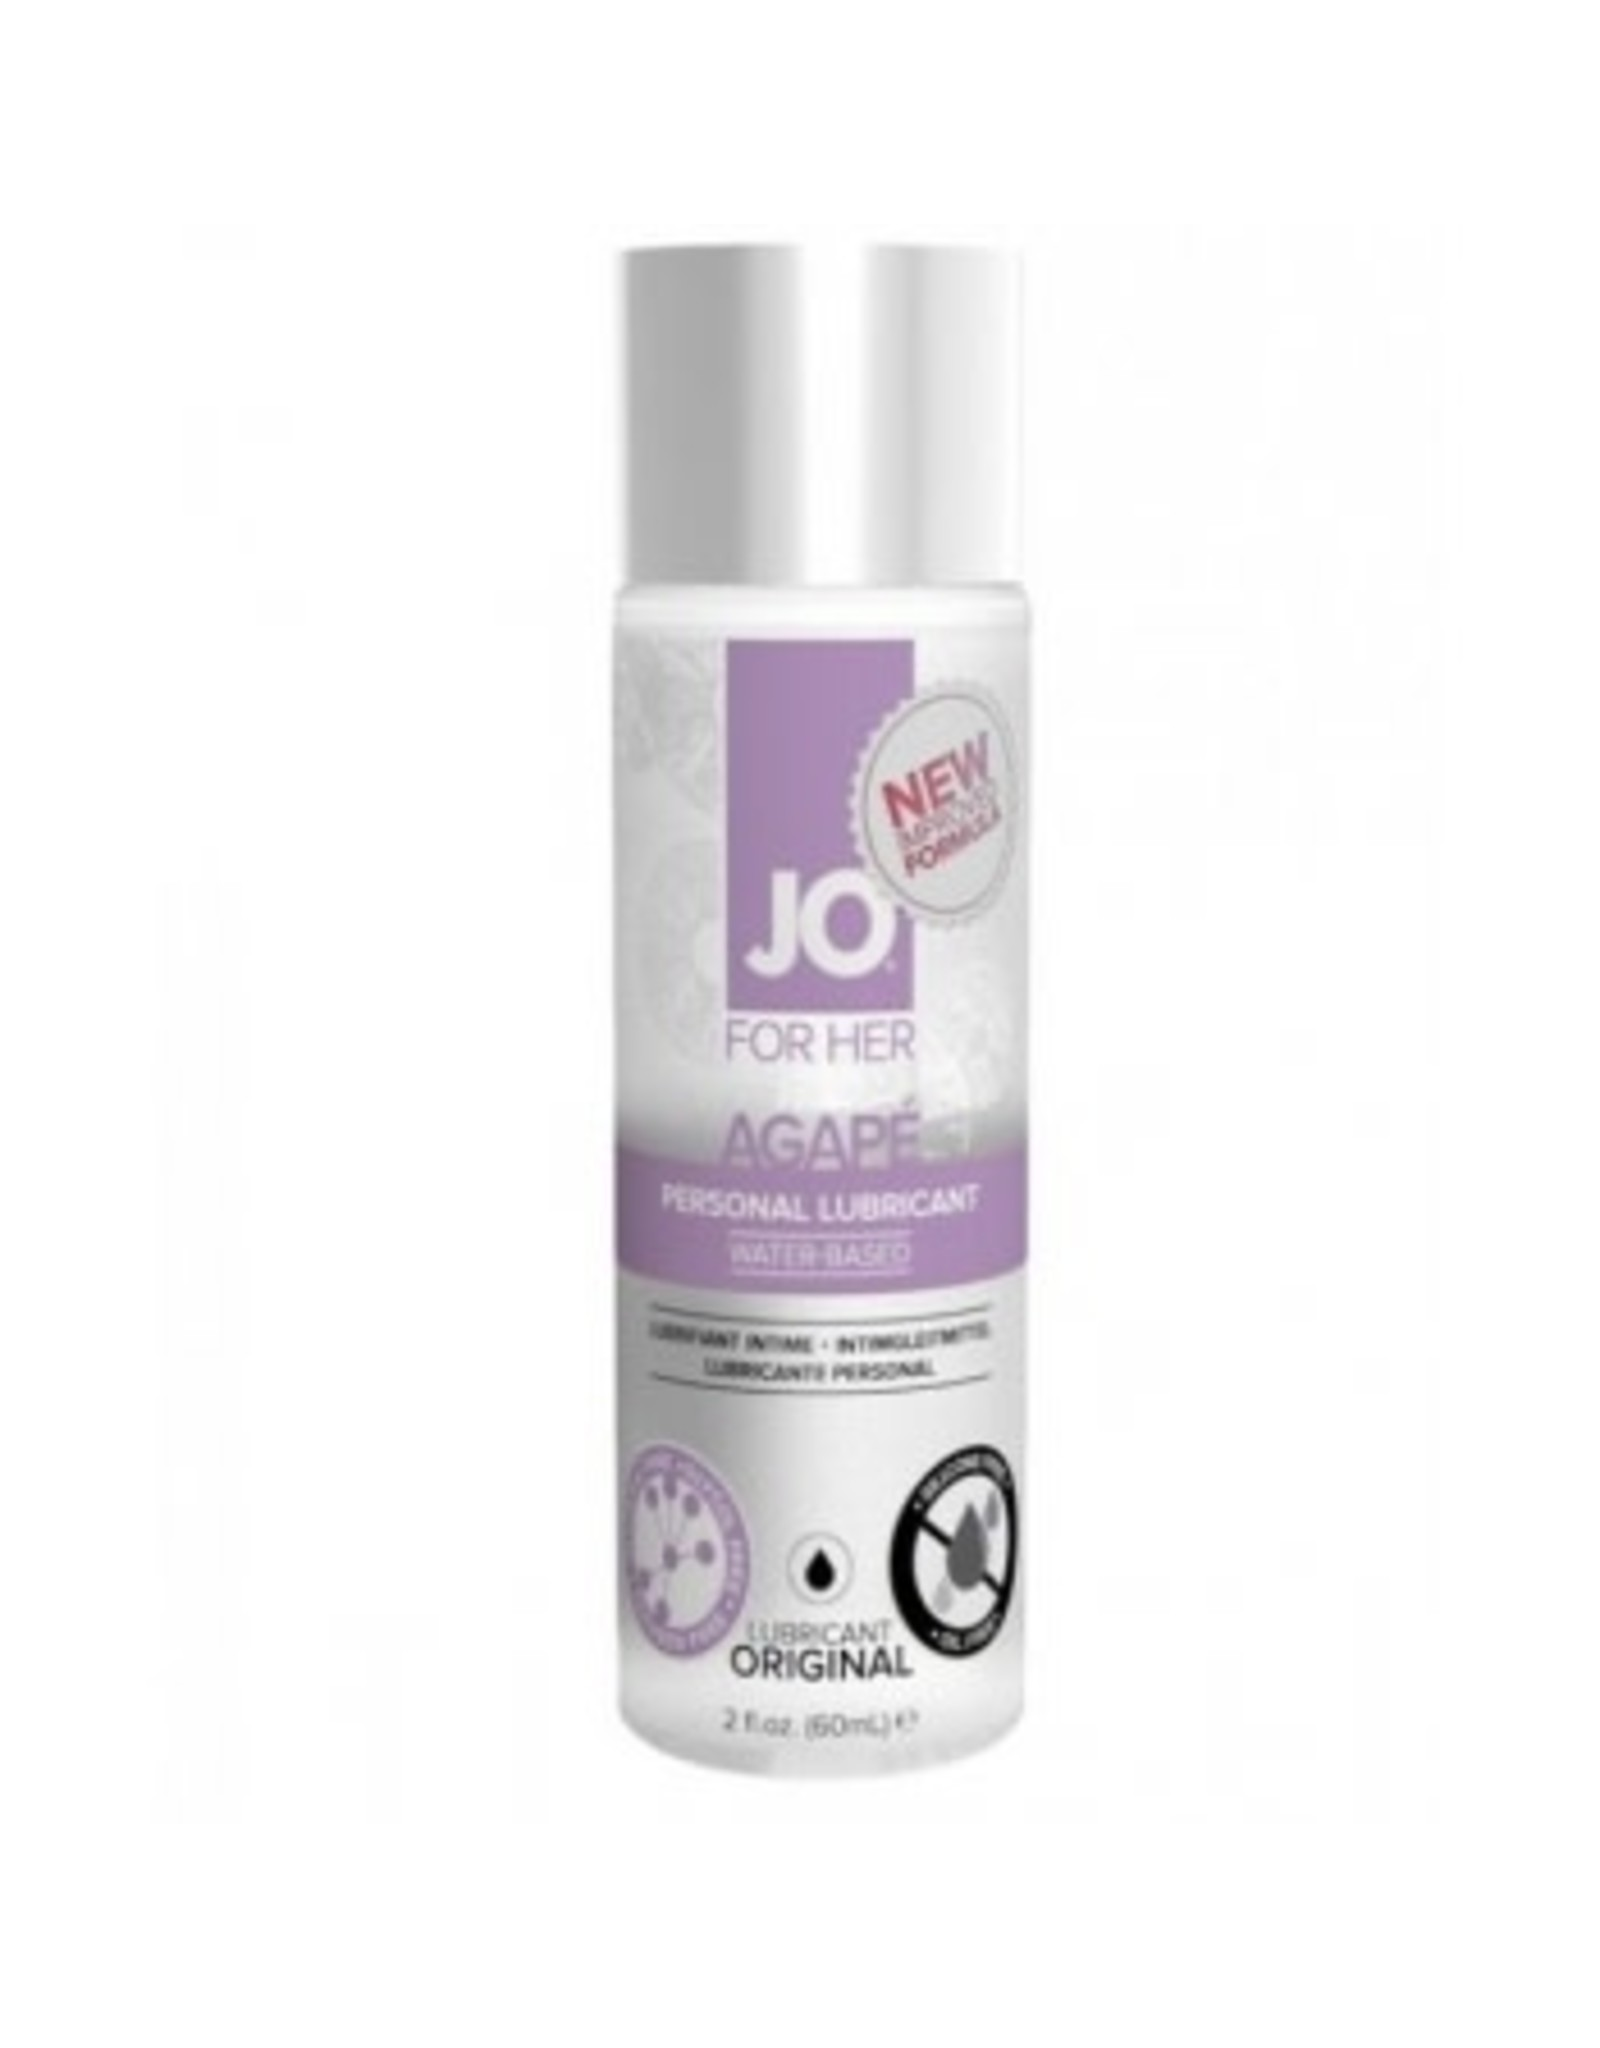 Jo Agape Womens Lube